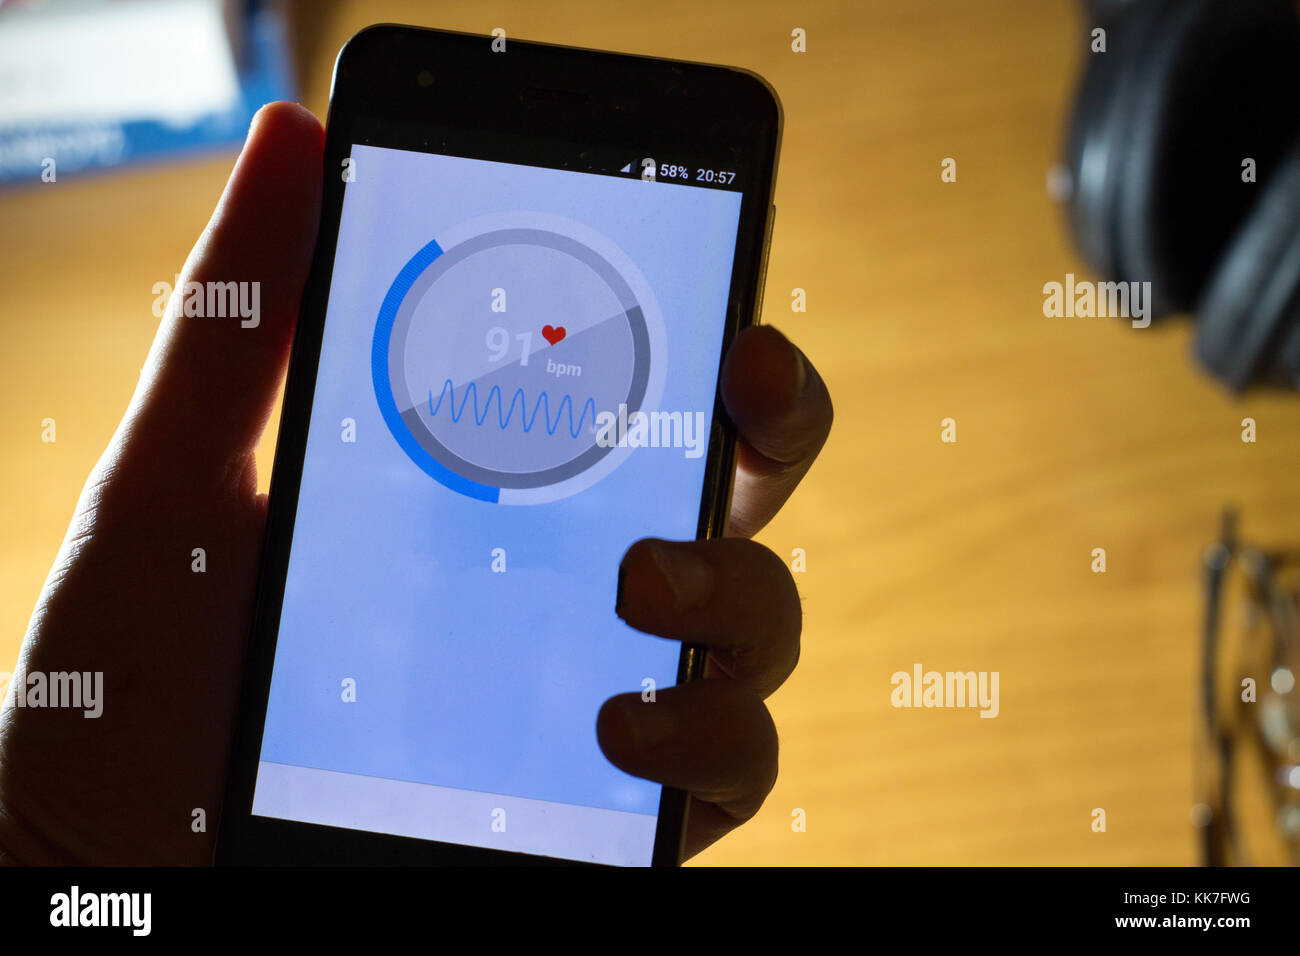 smartphone app heart rate monitor that works with camera sensor - Stock Image